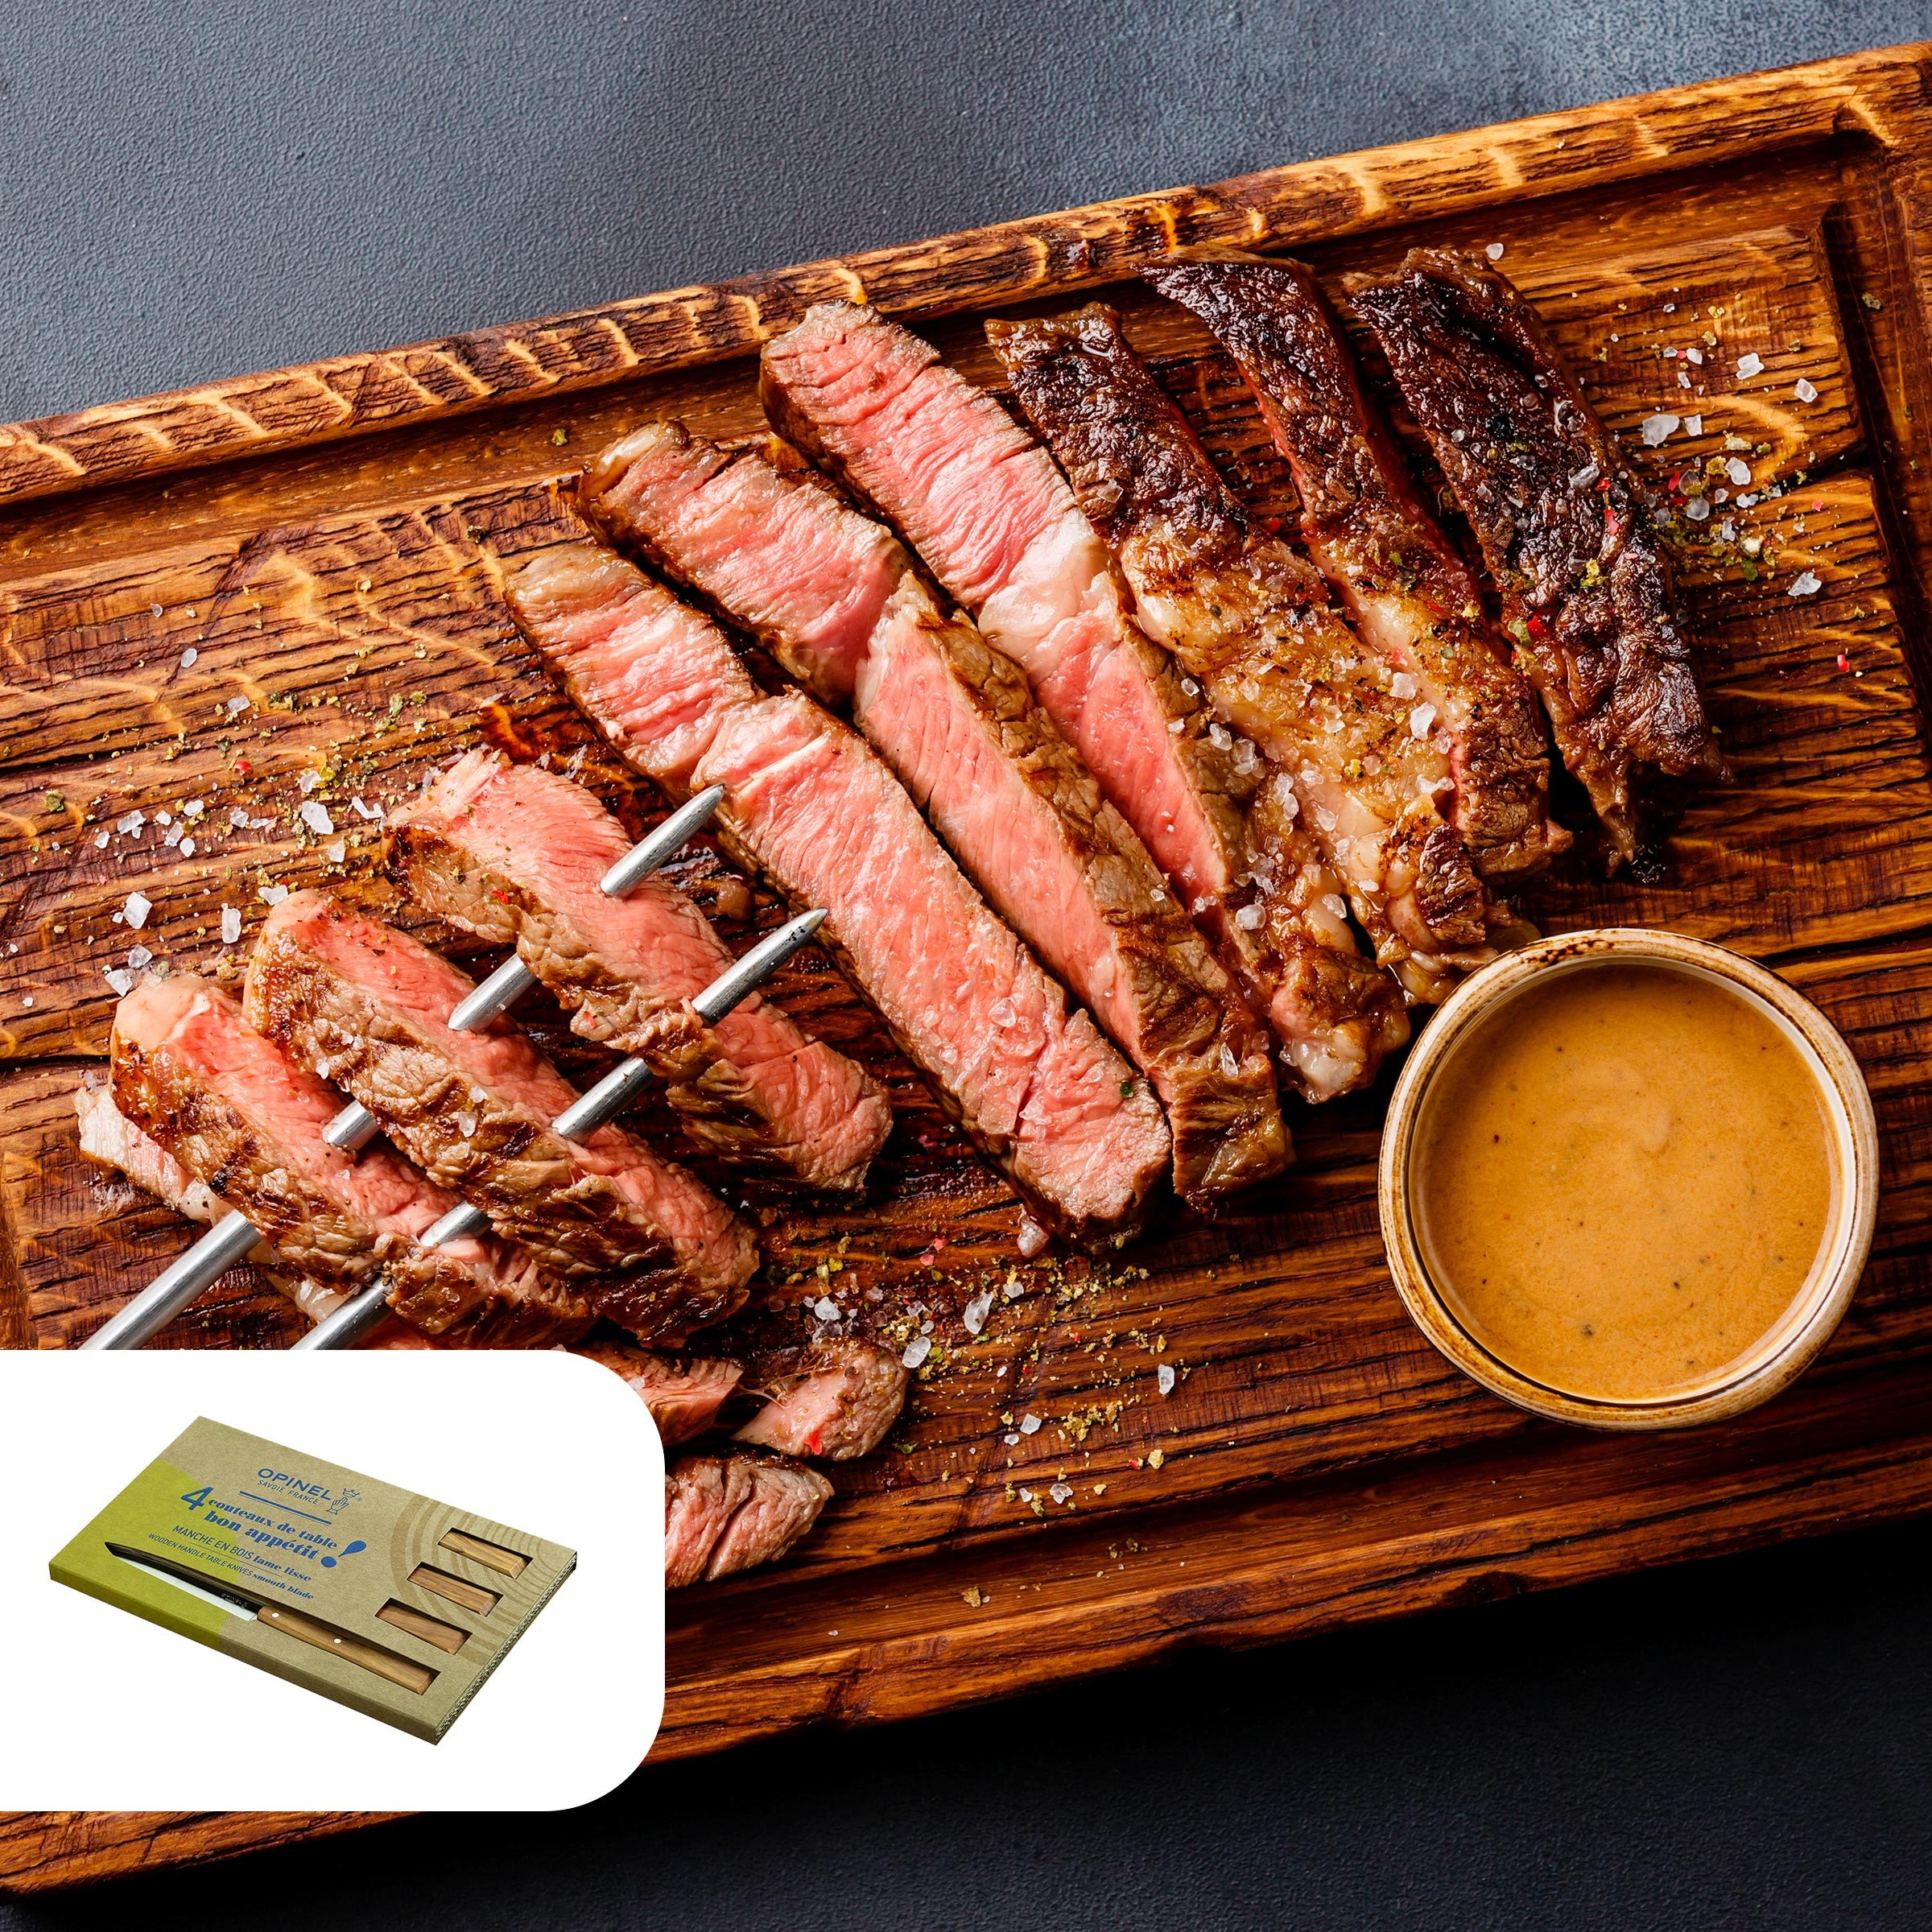 Cowboy steak with whiskey butter